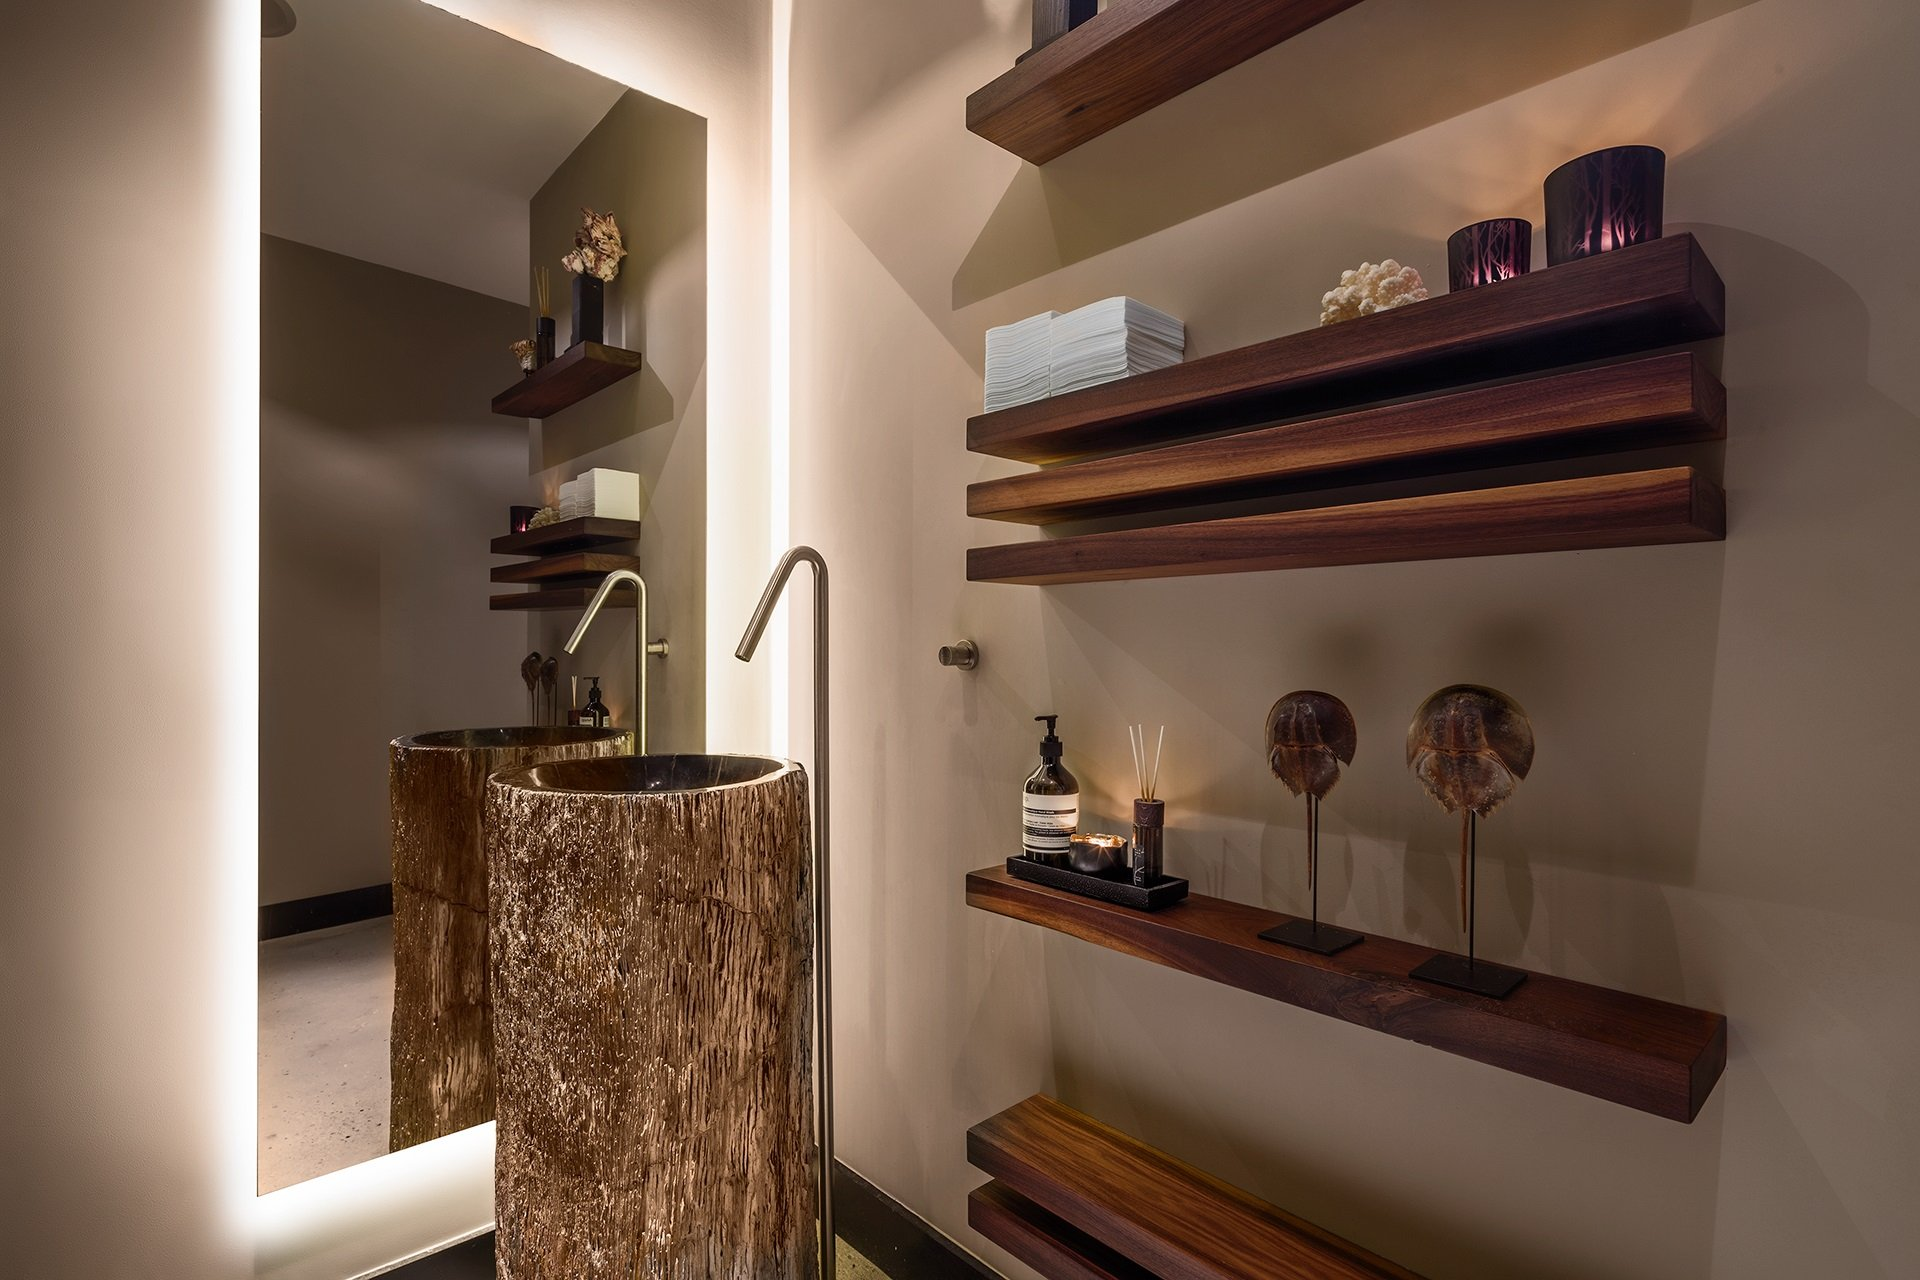 Luxury toilet design with walnut shelves and petrified wood washbasin with free-standing stainless steel tap.